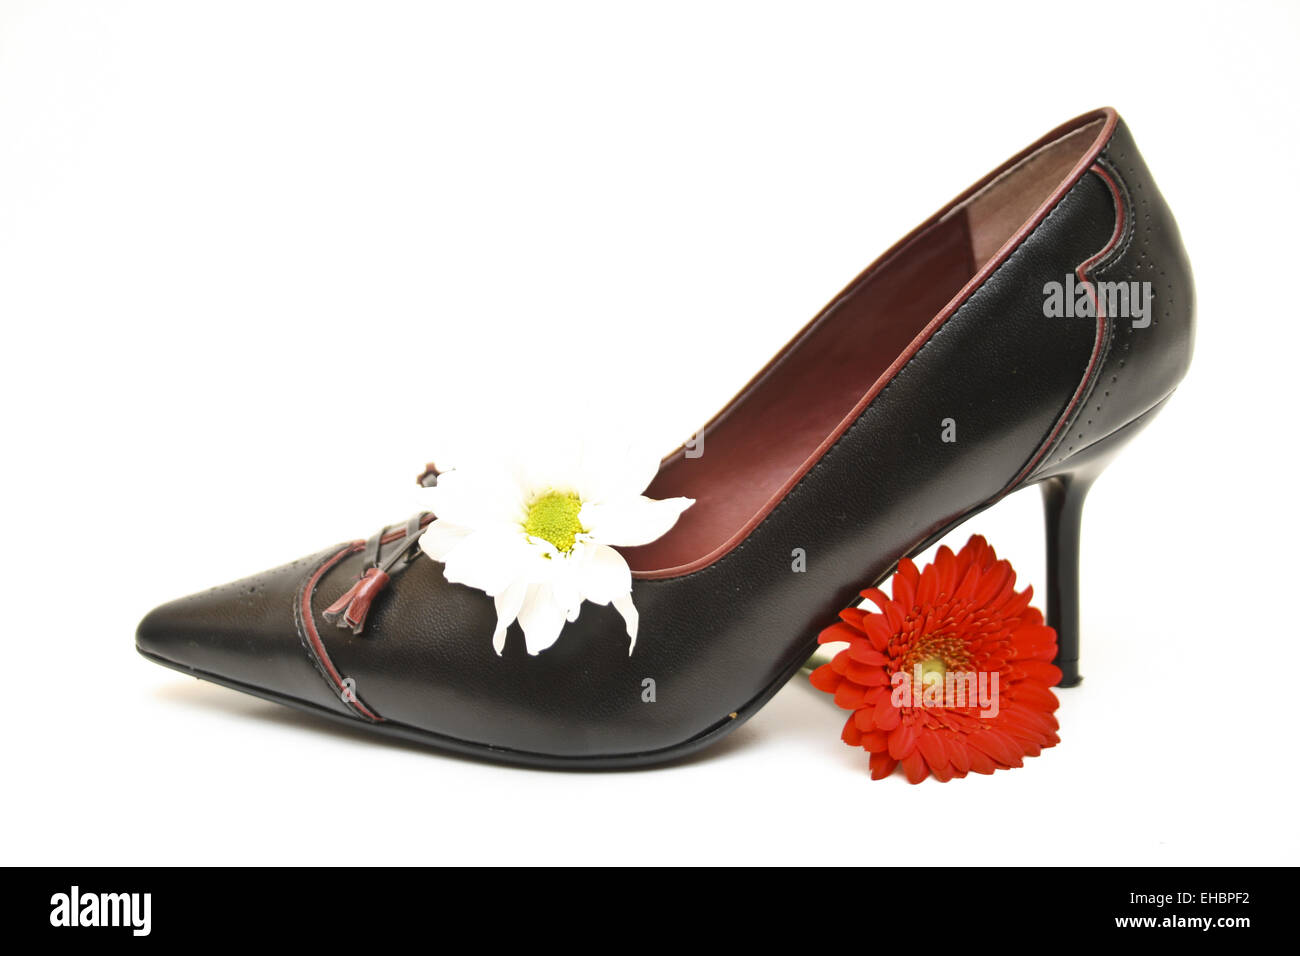 Shoe with flowers - Stock Image